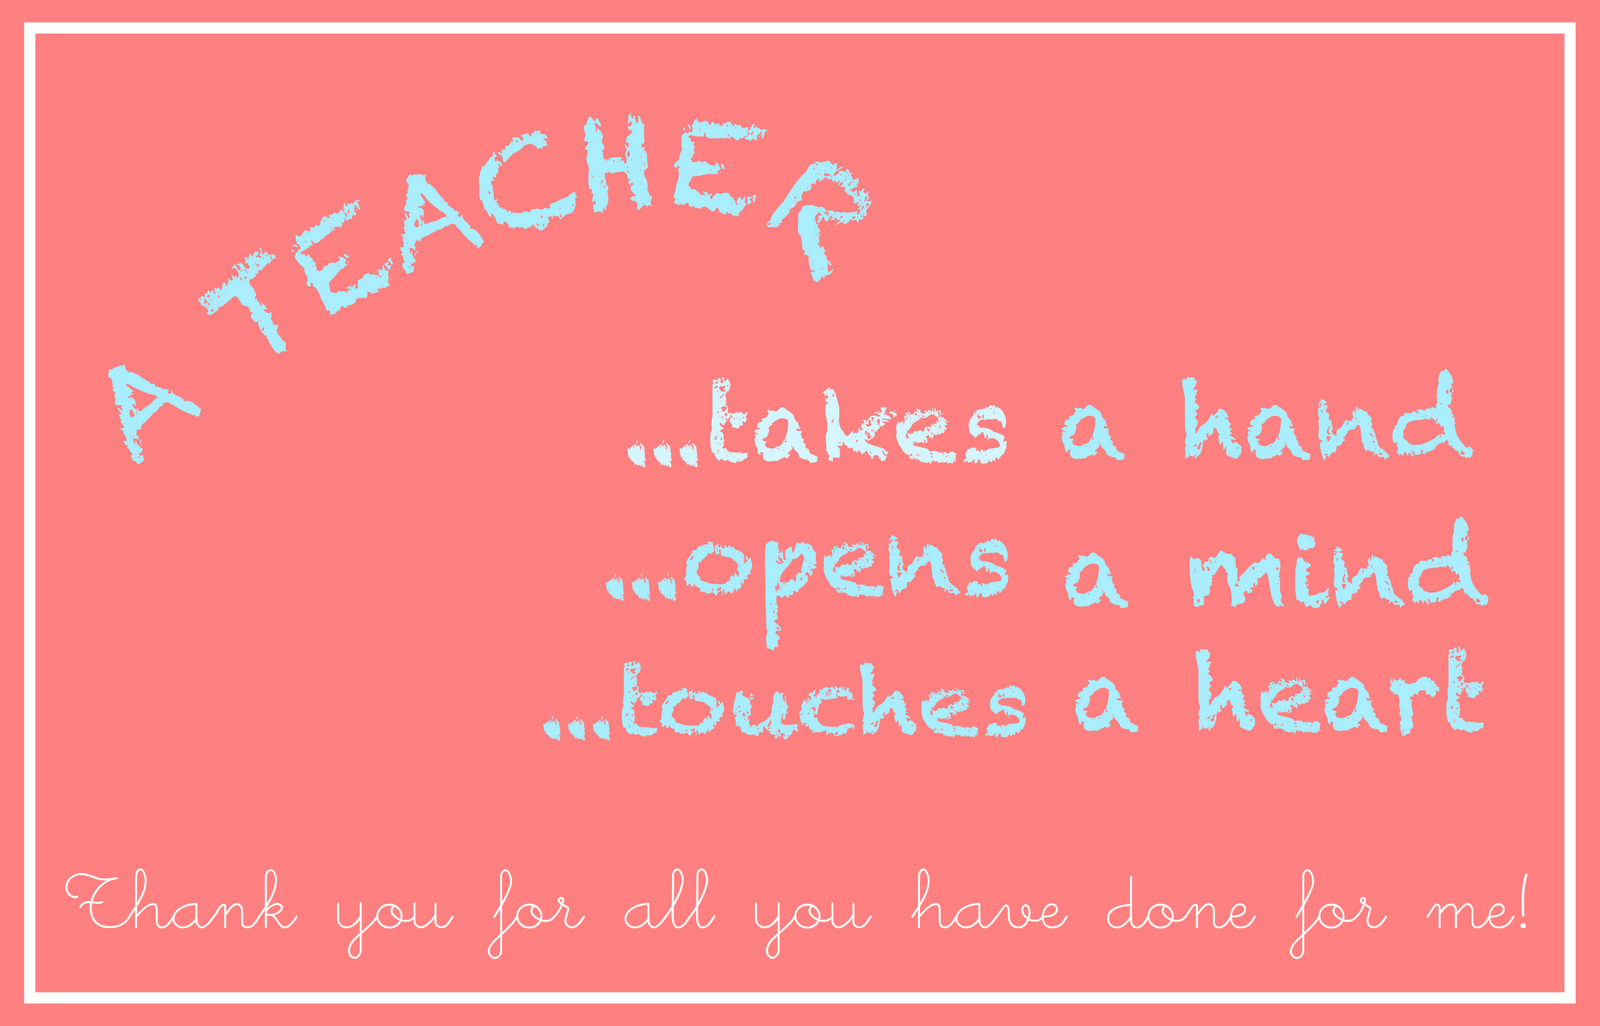 picture relating to Teacher Appreciation Cards Printable known as totally free printable instructor appreciation card - an Lehrer